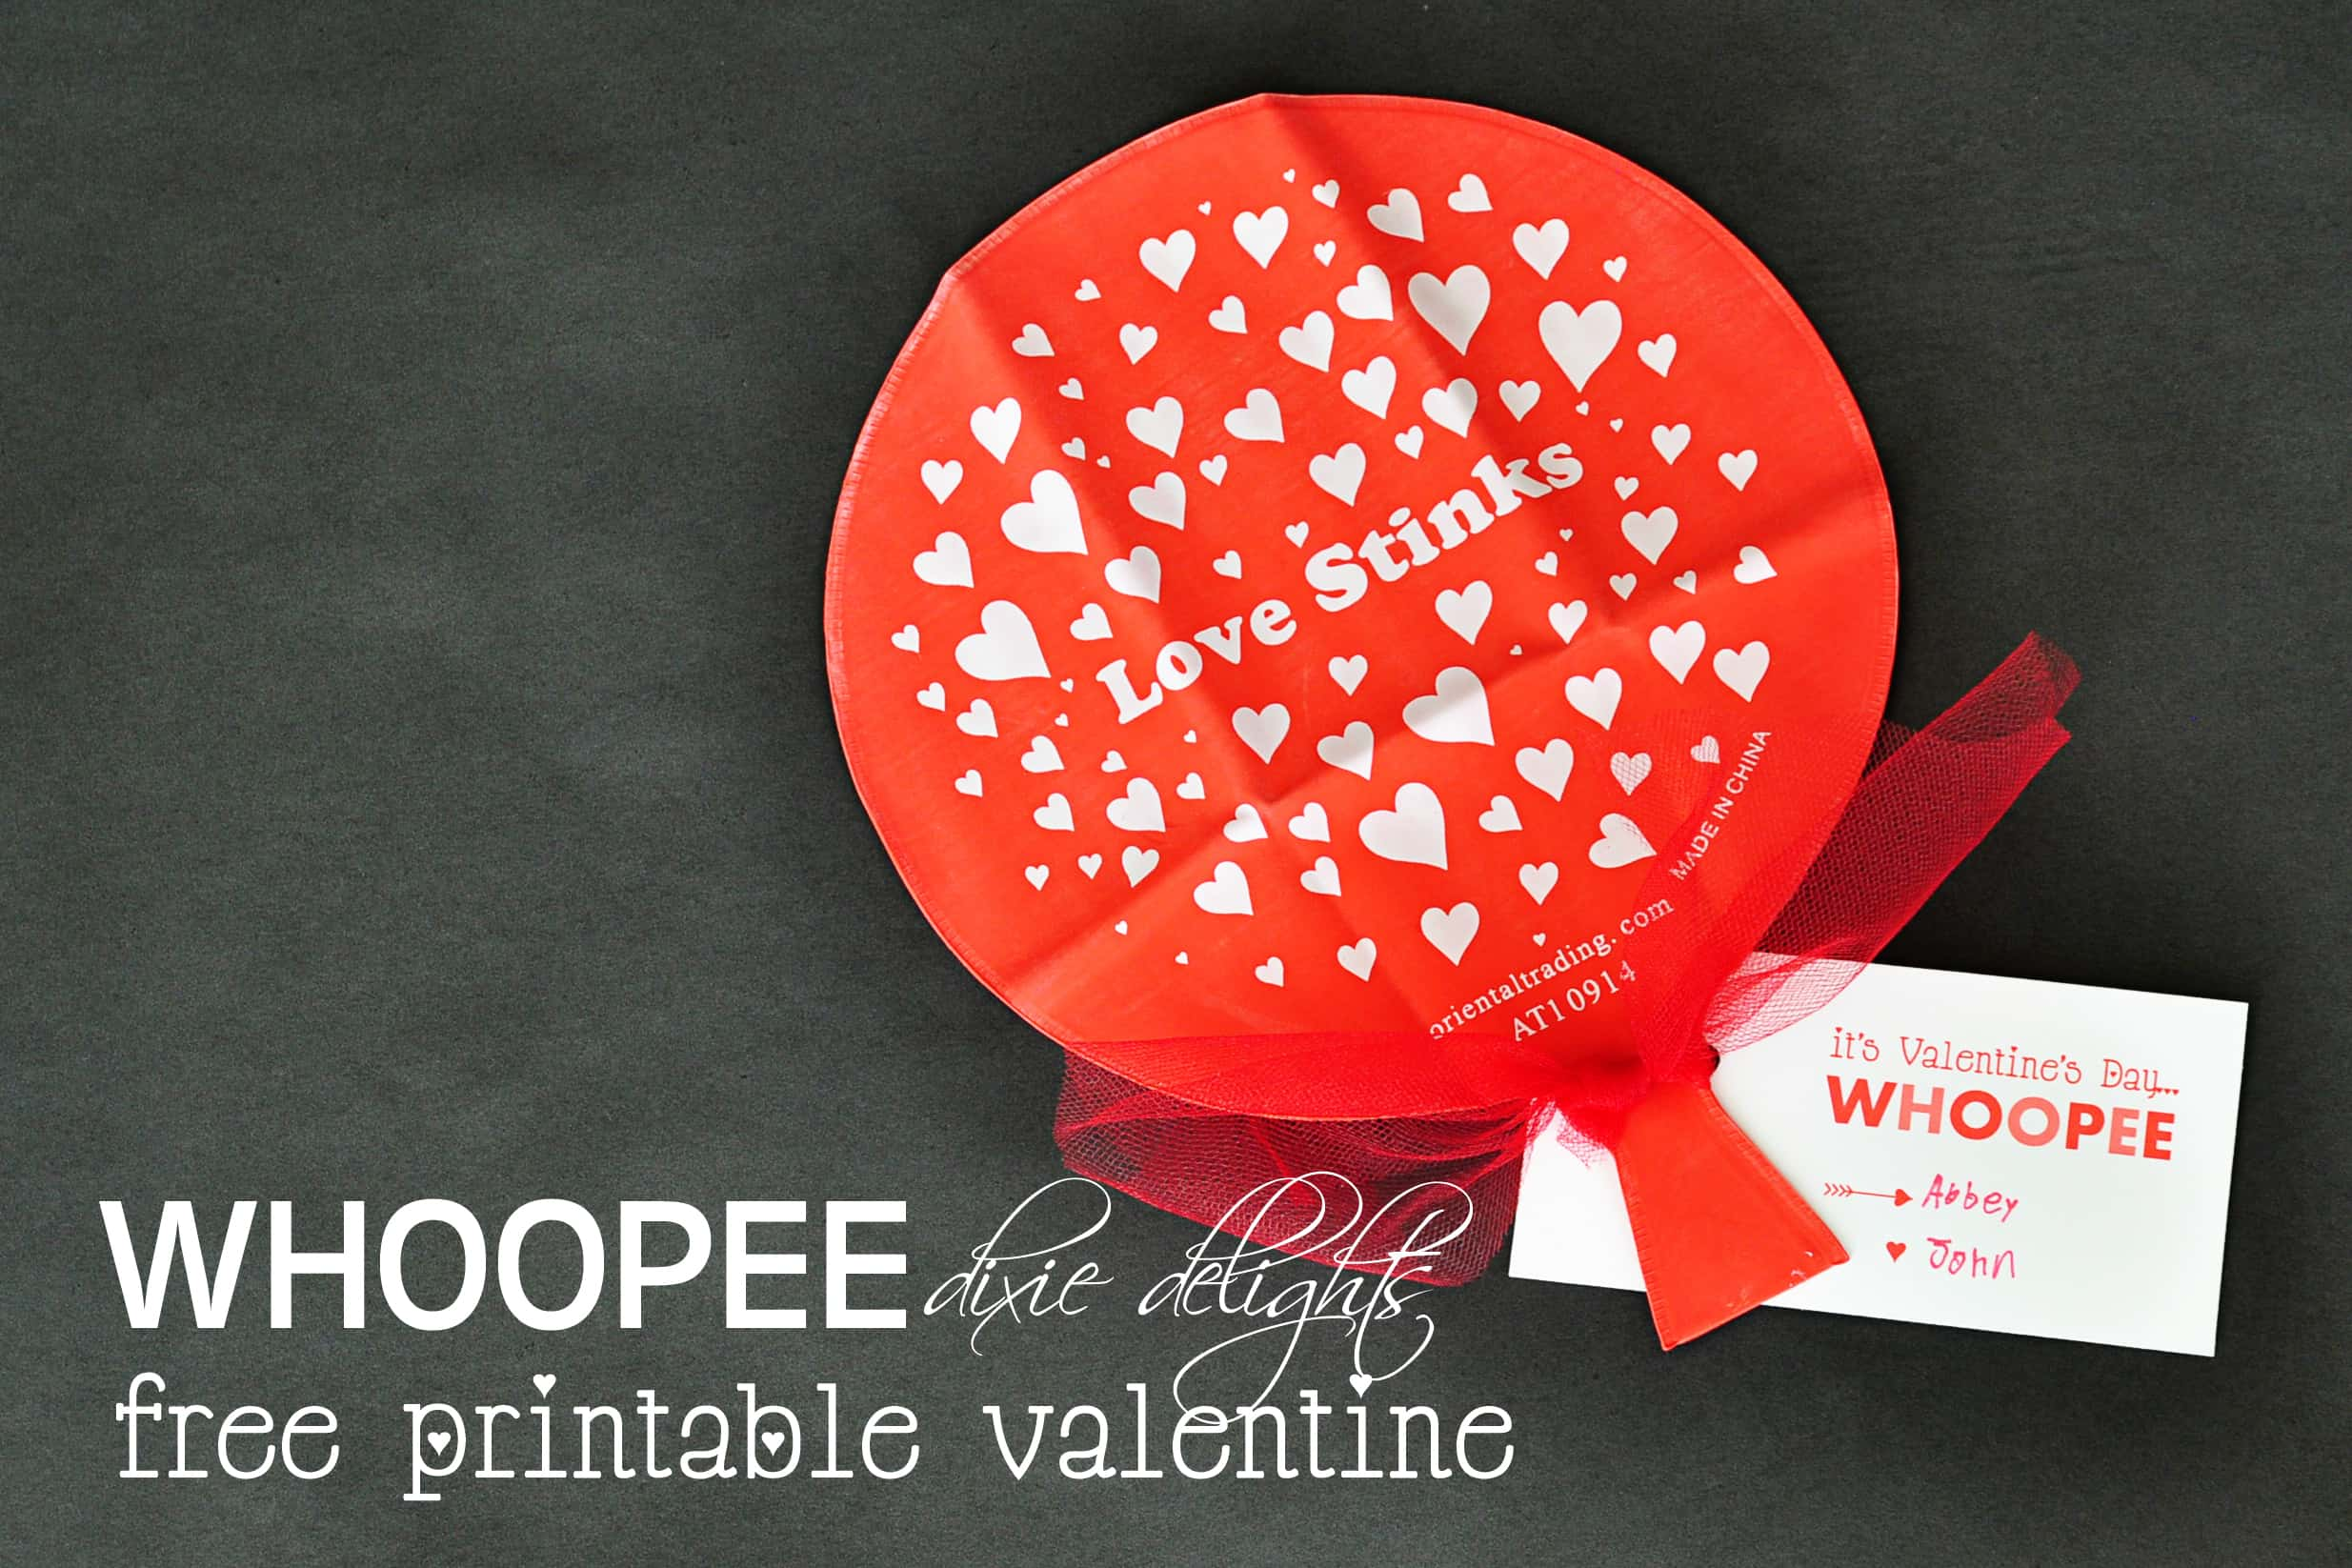 ... Whoopee Cushion Valentines. DSC_0050 Copy